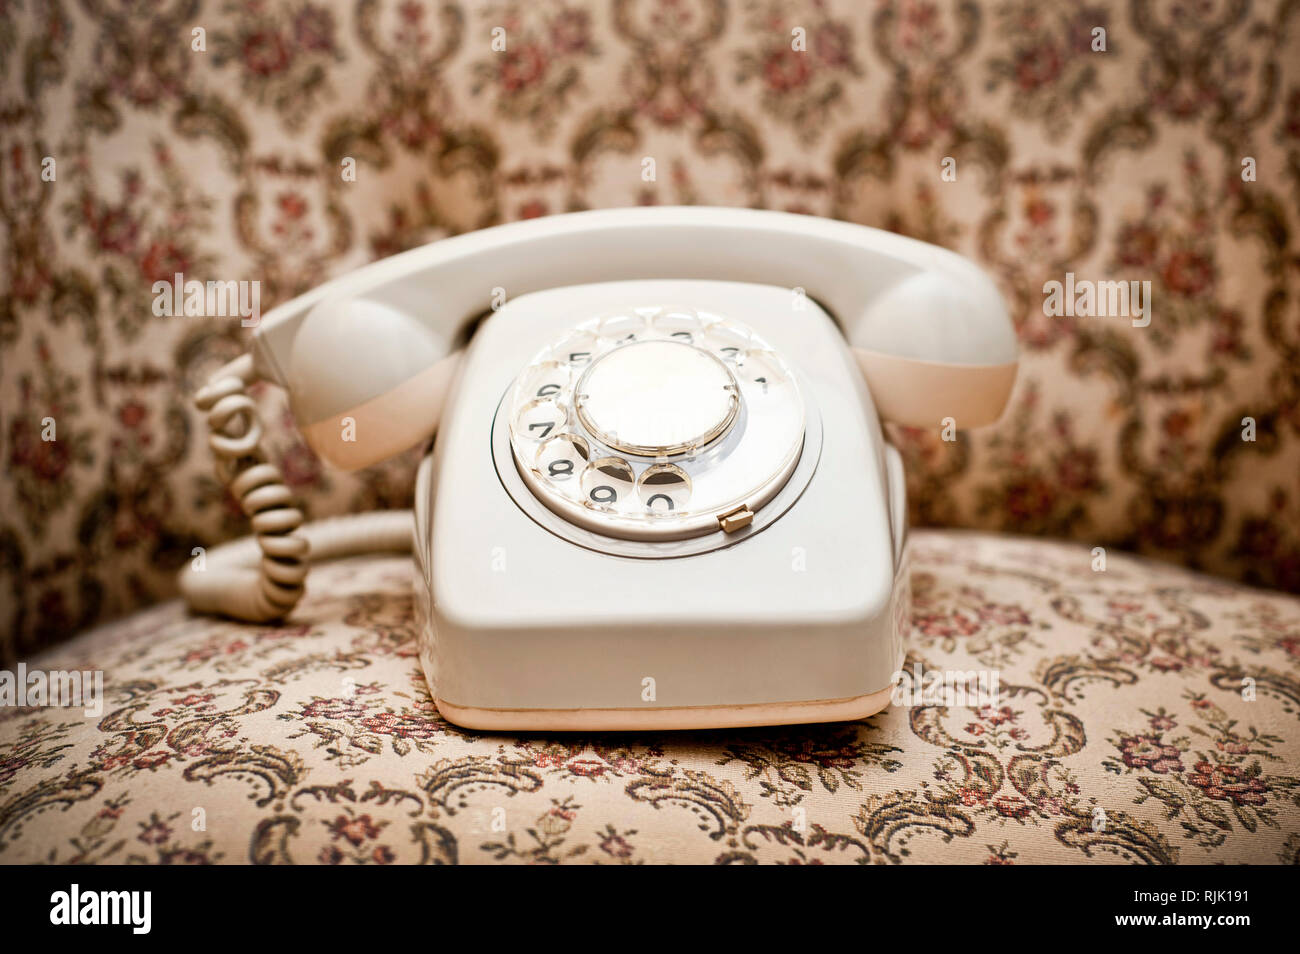 a retro rotary dial telephone - Stock Image